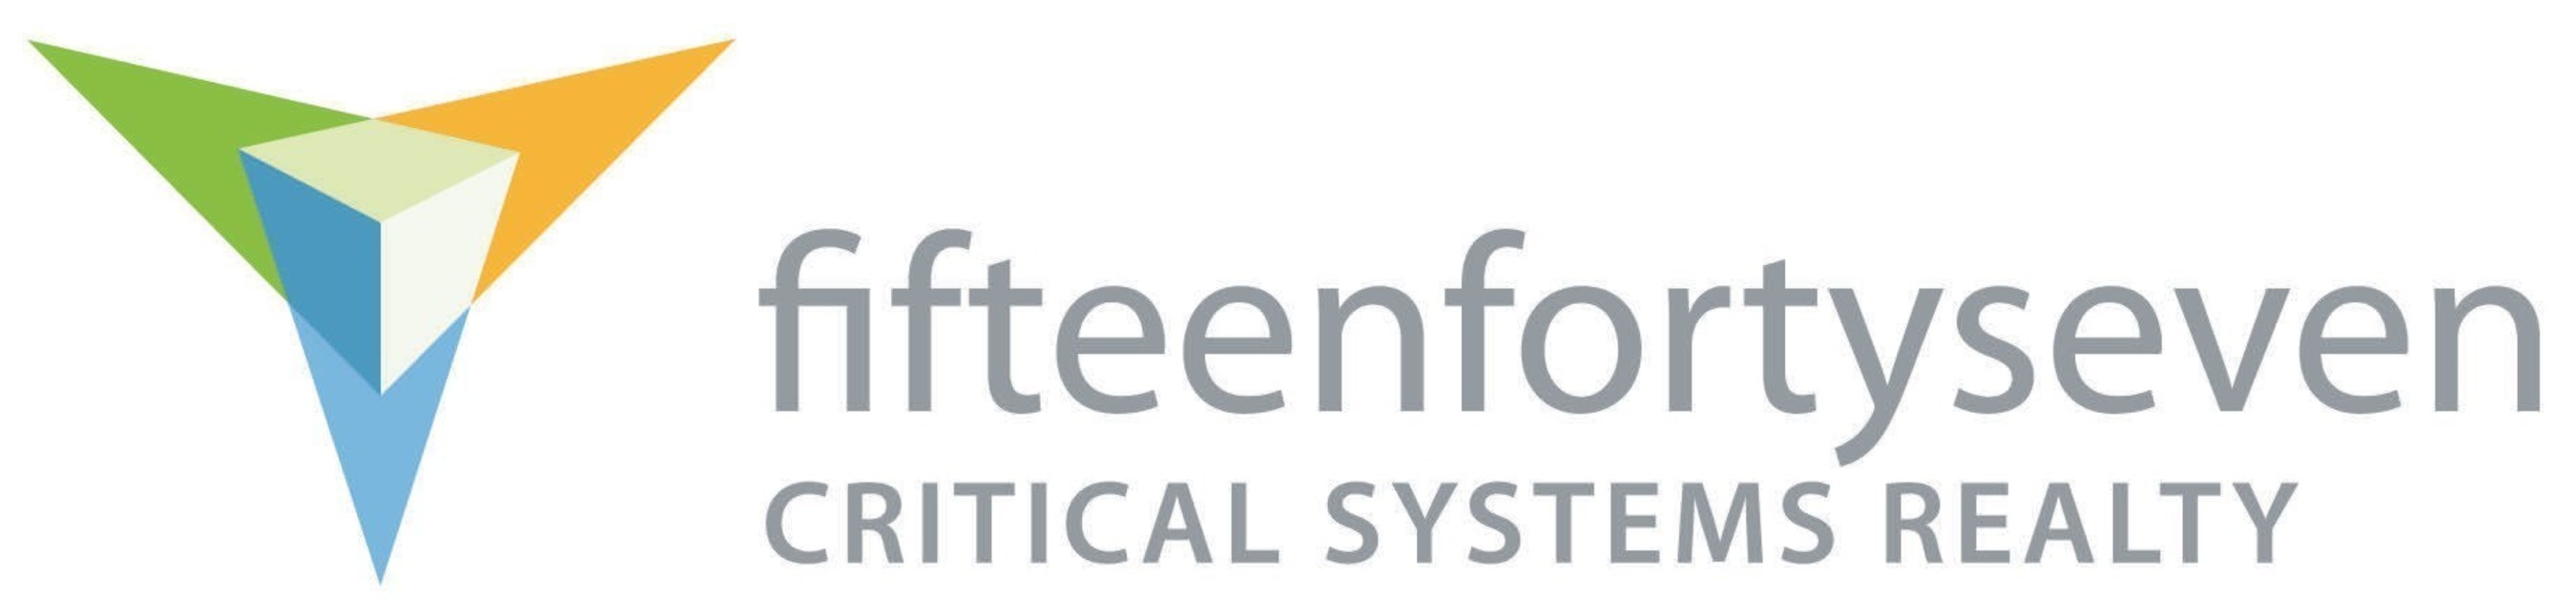 fifteenfortyseven Critical Systems Realty Hires Mitch Kralis as Executive Vice President of Real